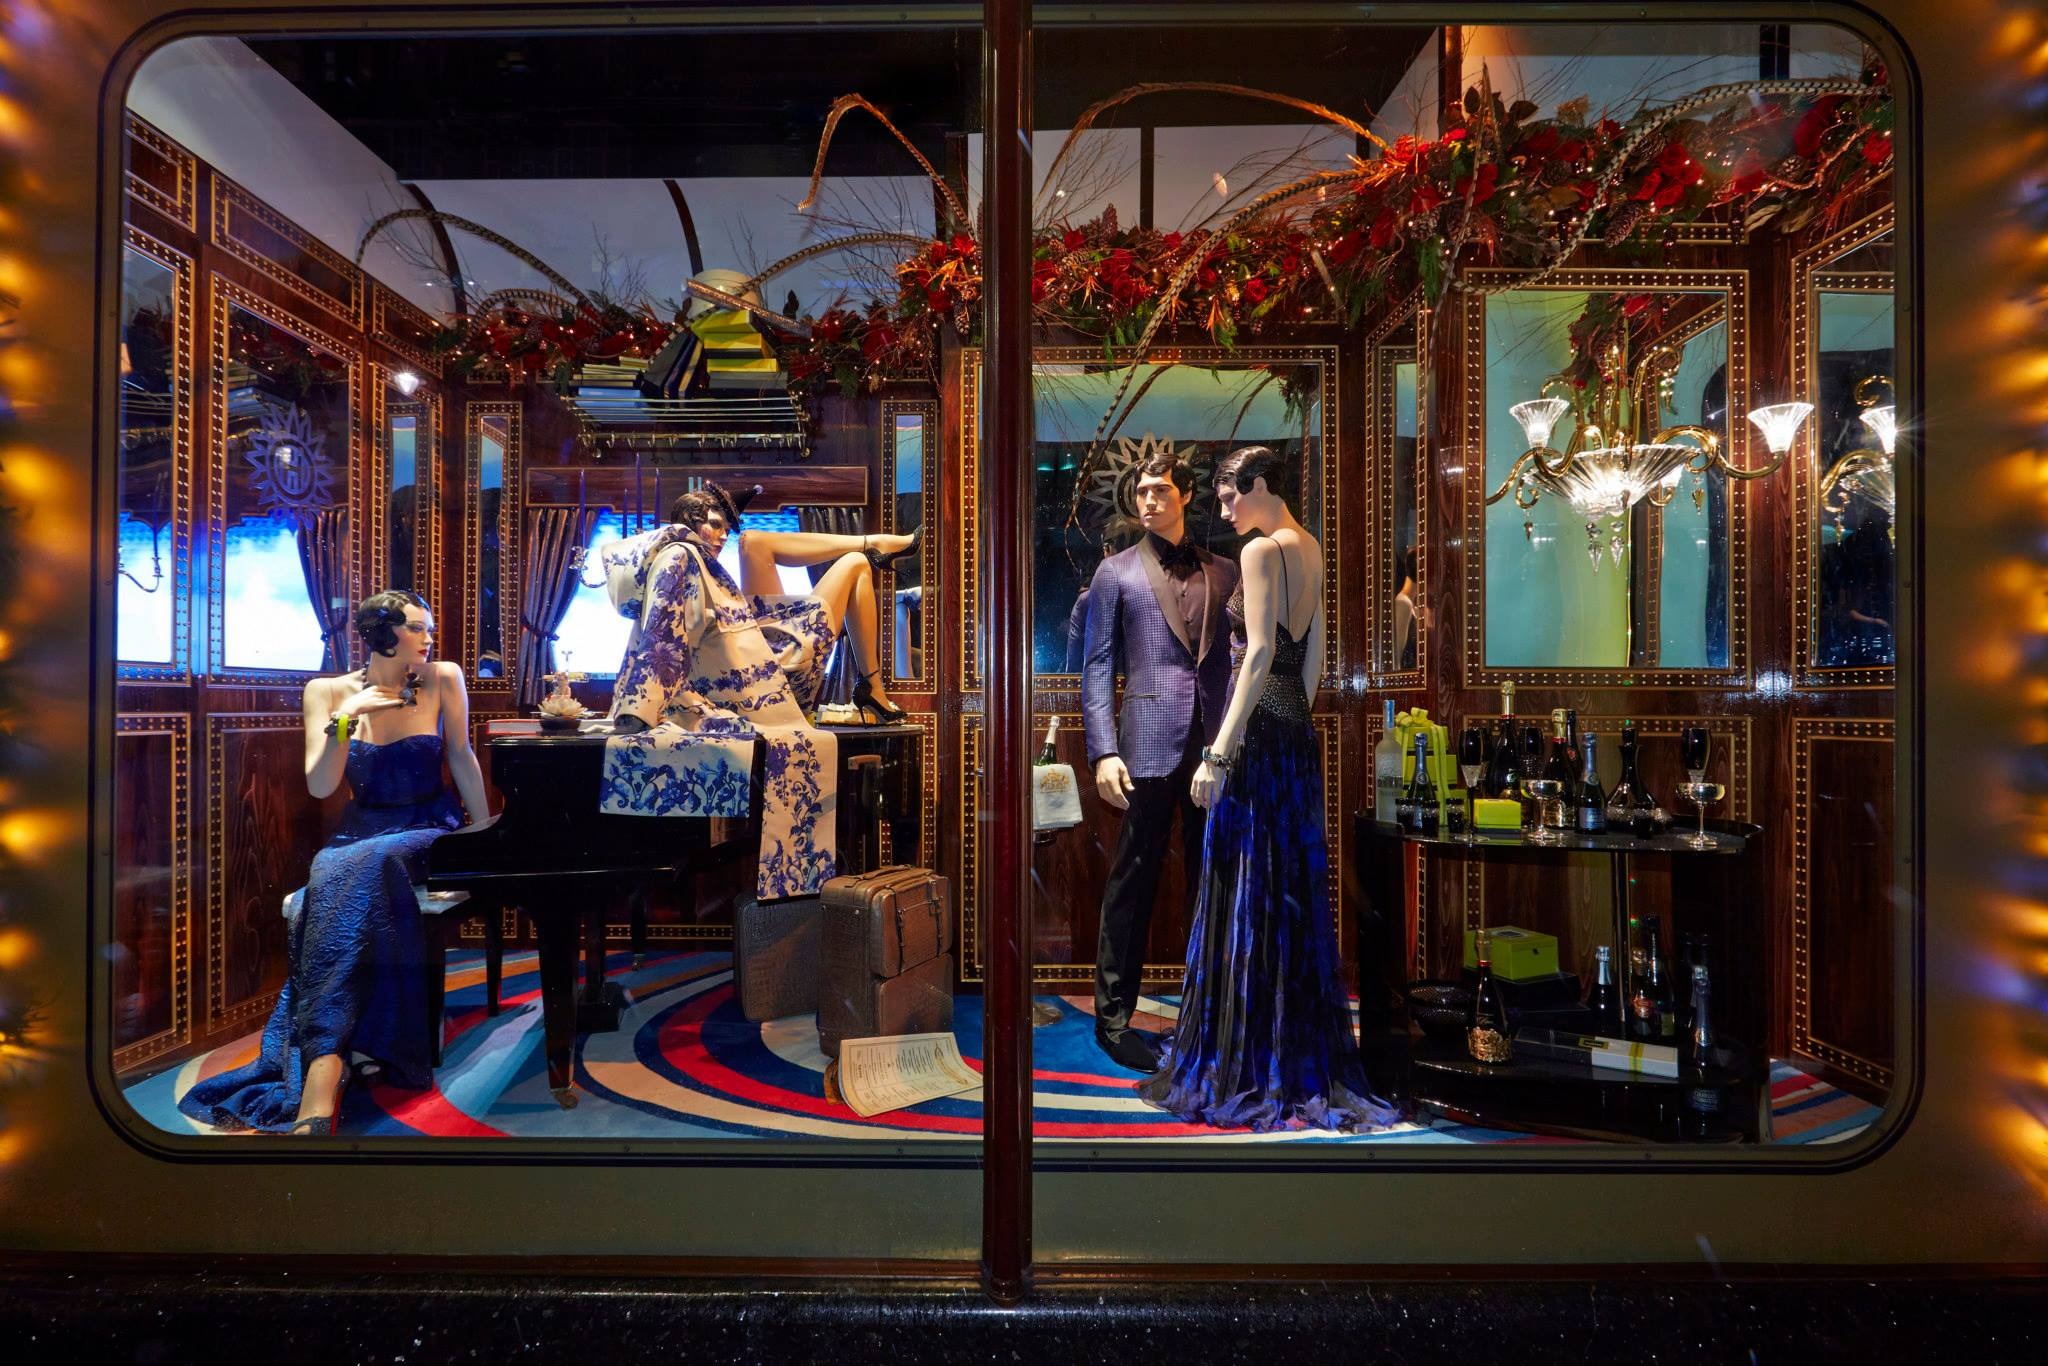 100+ Christmas Window Display Ideas - Part #2 - Mannequin Mall |Holiday Window Displays